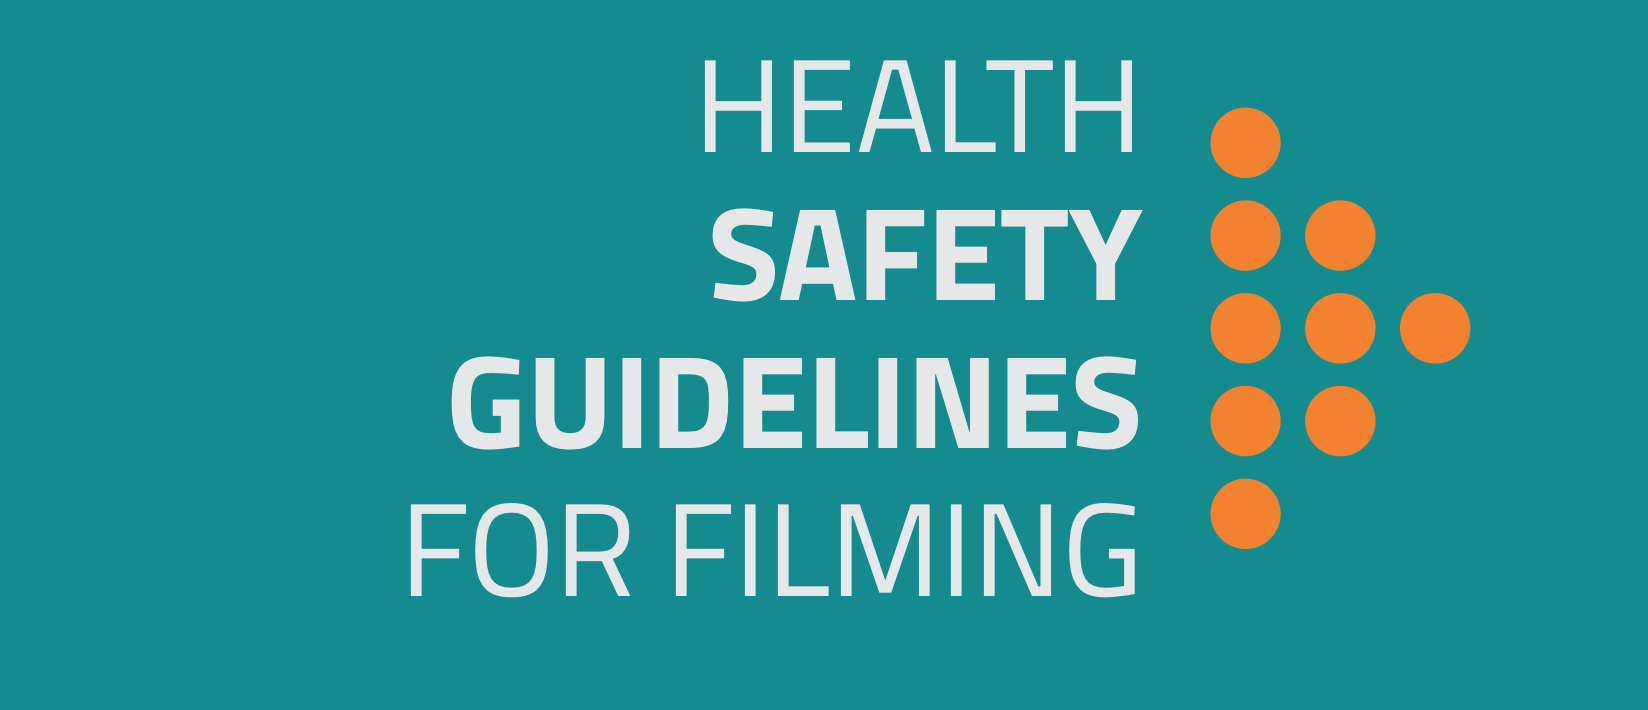 HEALTH SAFETY GUIDELINES FOR FILMING